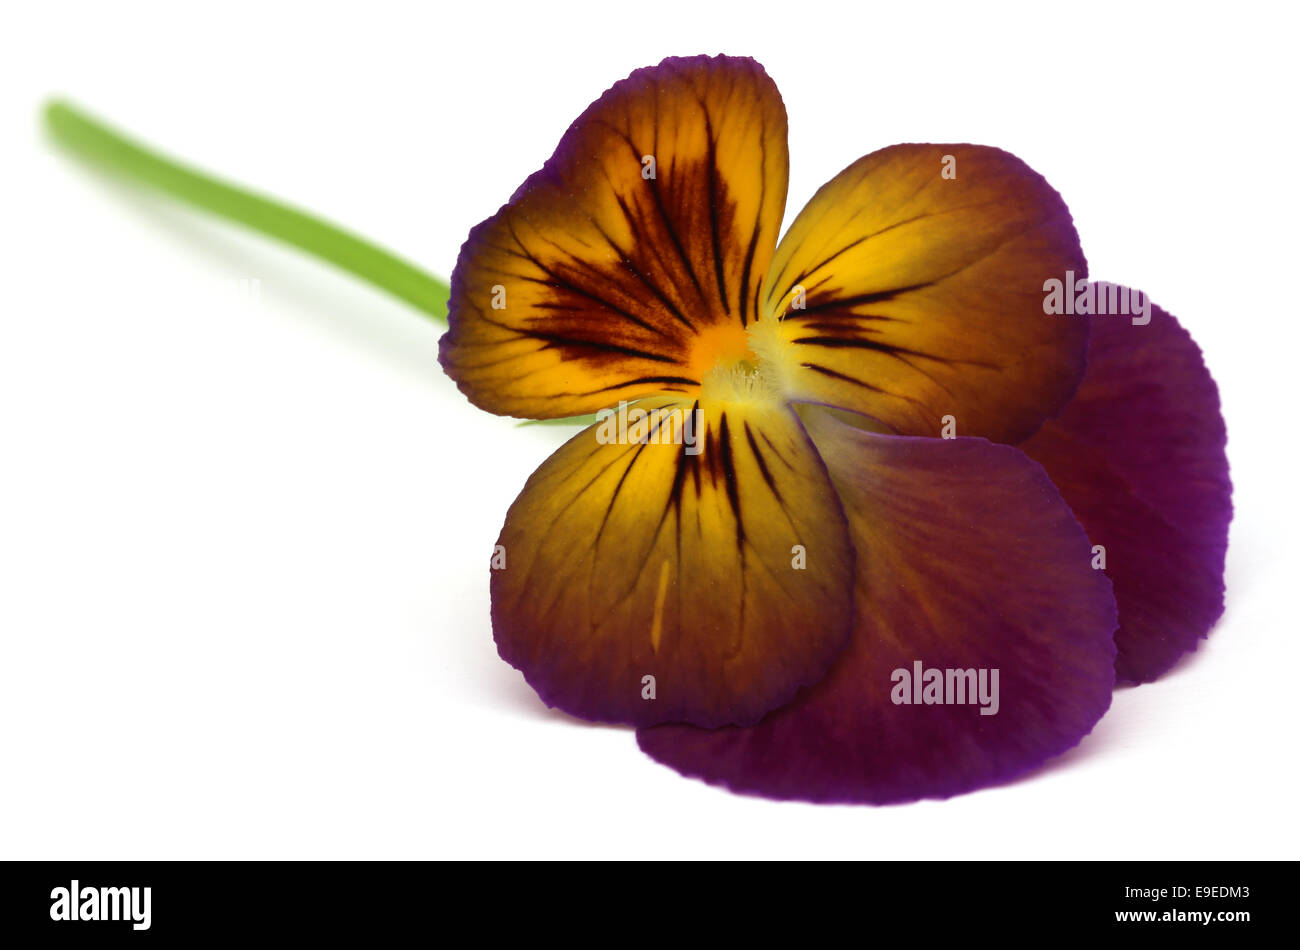 Viola flower over white background - Stock Image